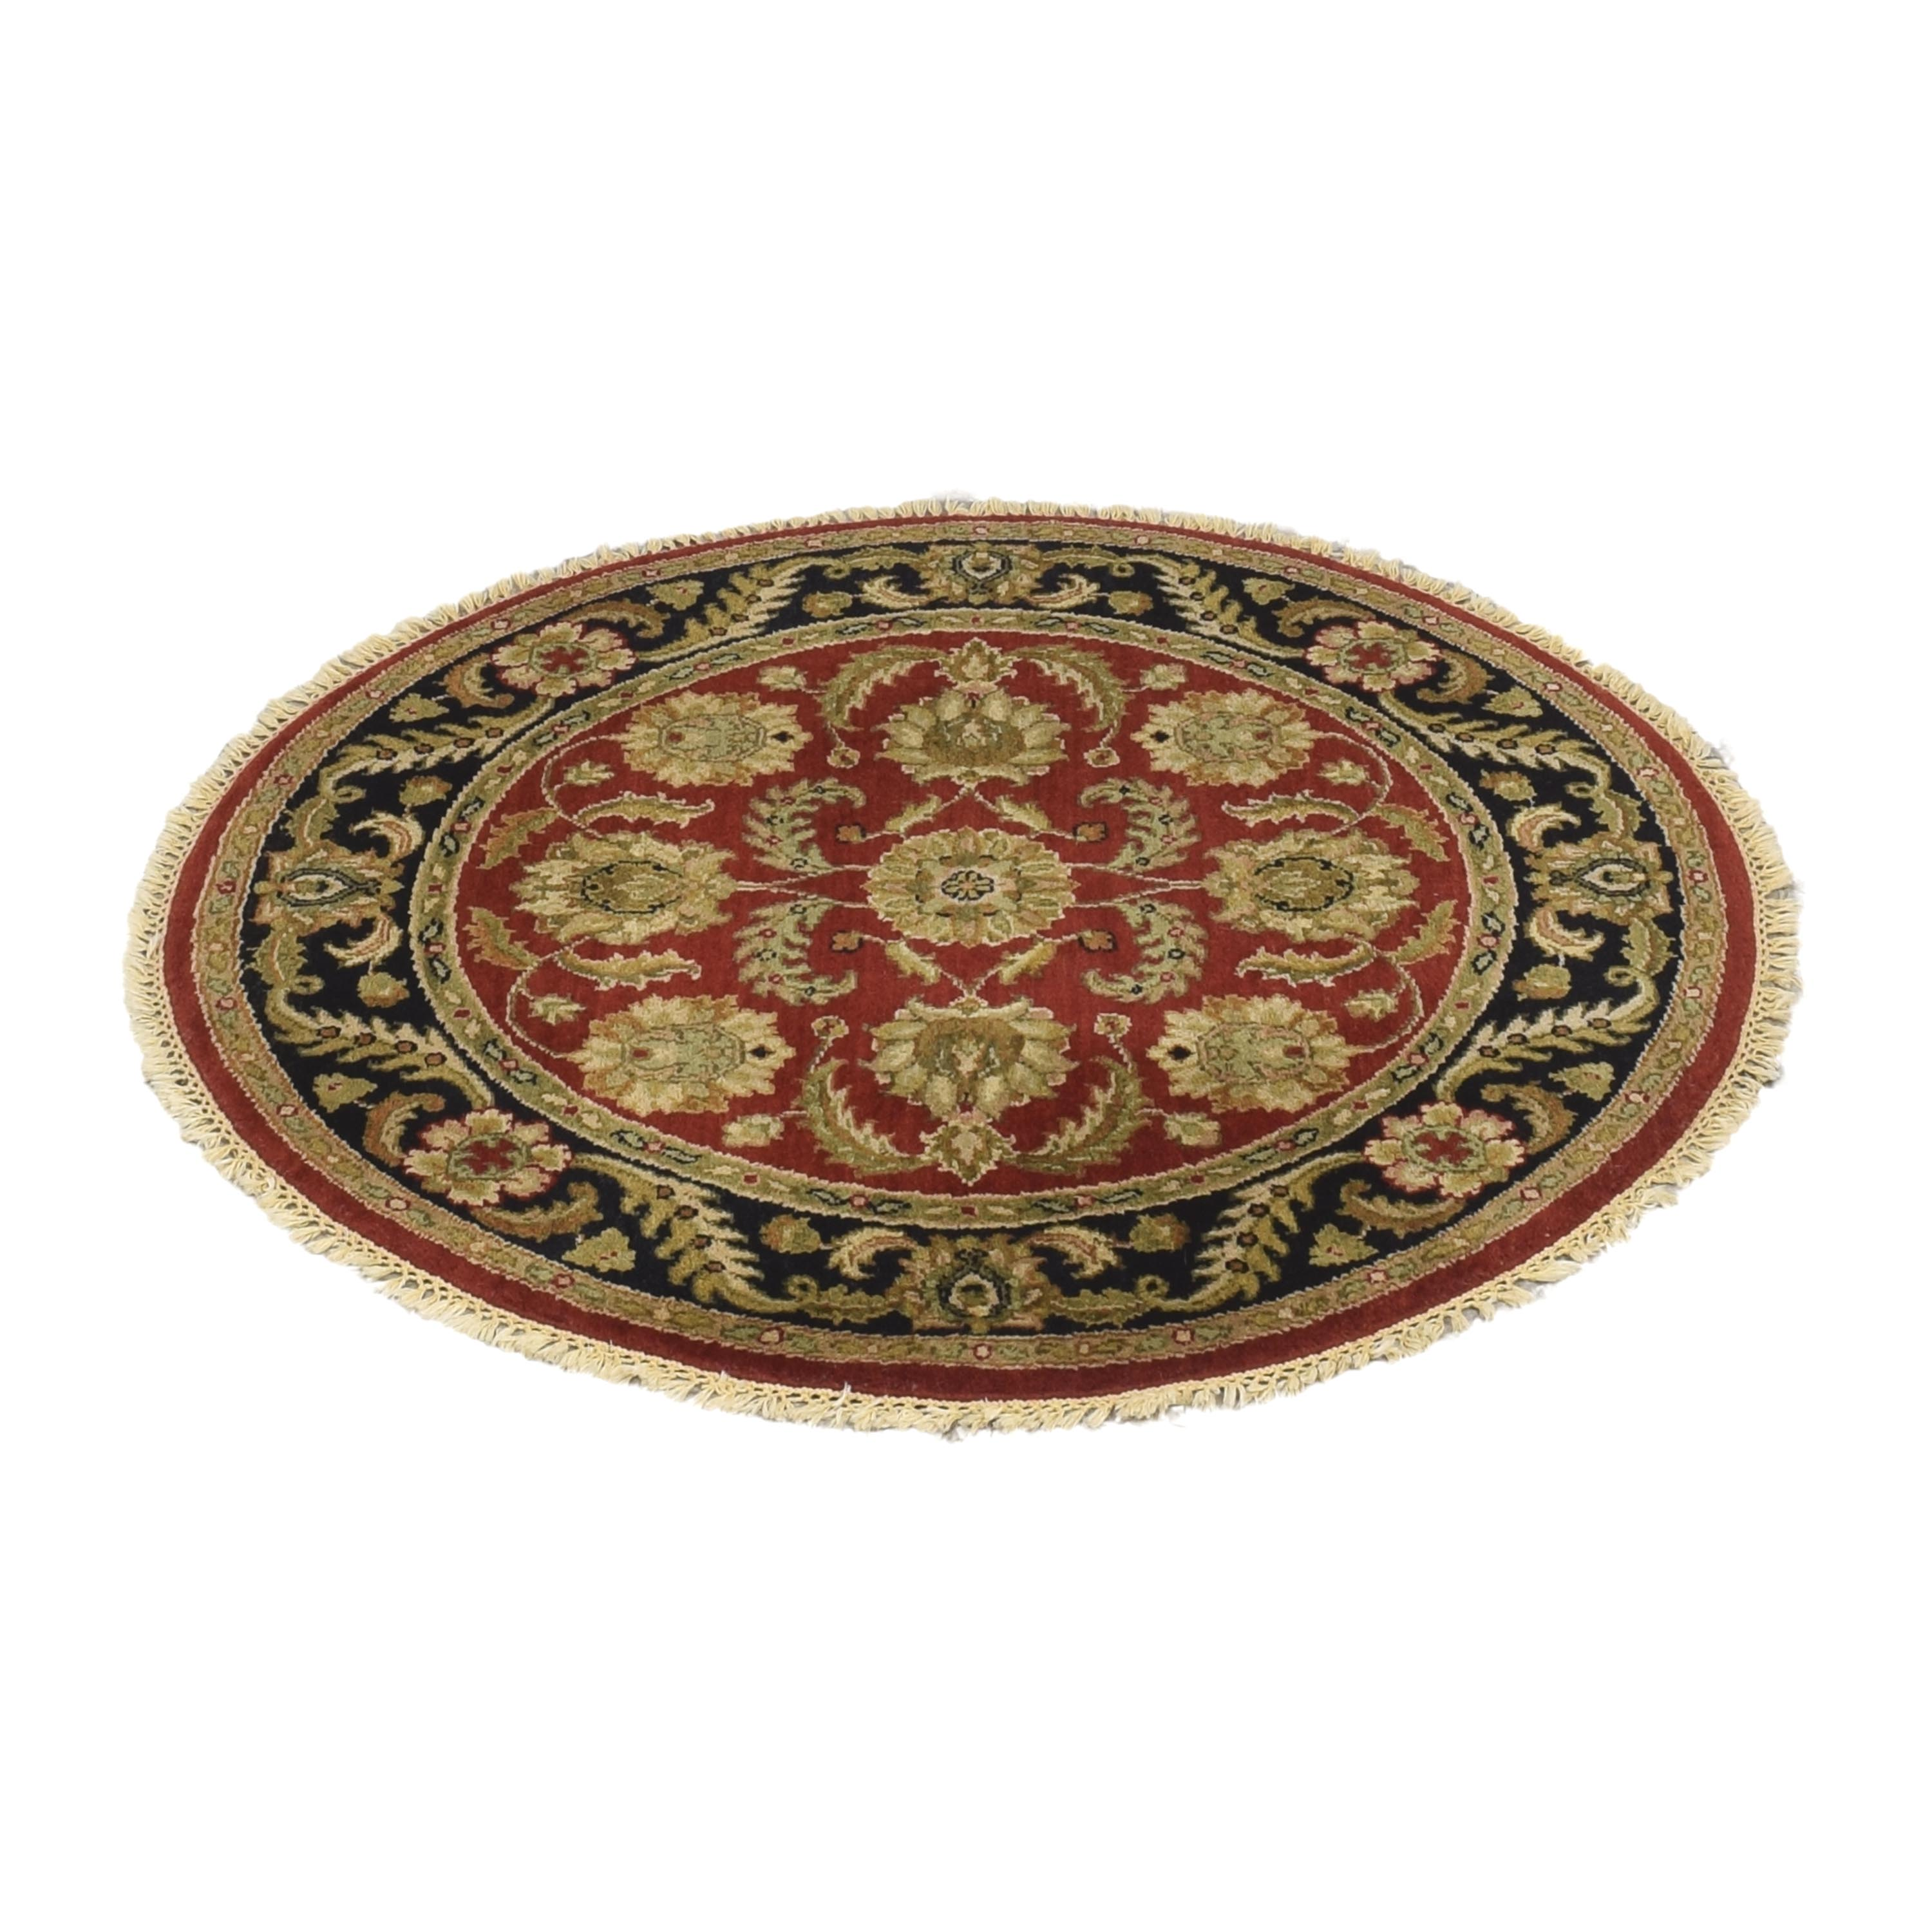 shop Home Decorators Collection Home Decorators Collection Round Mendocino Area Rug online